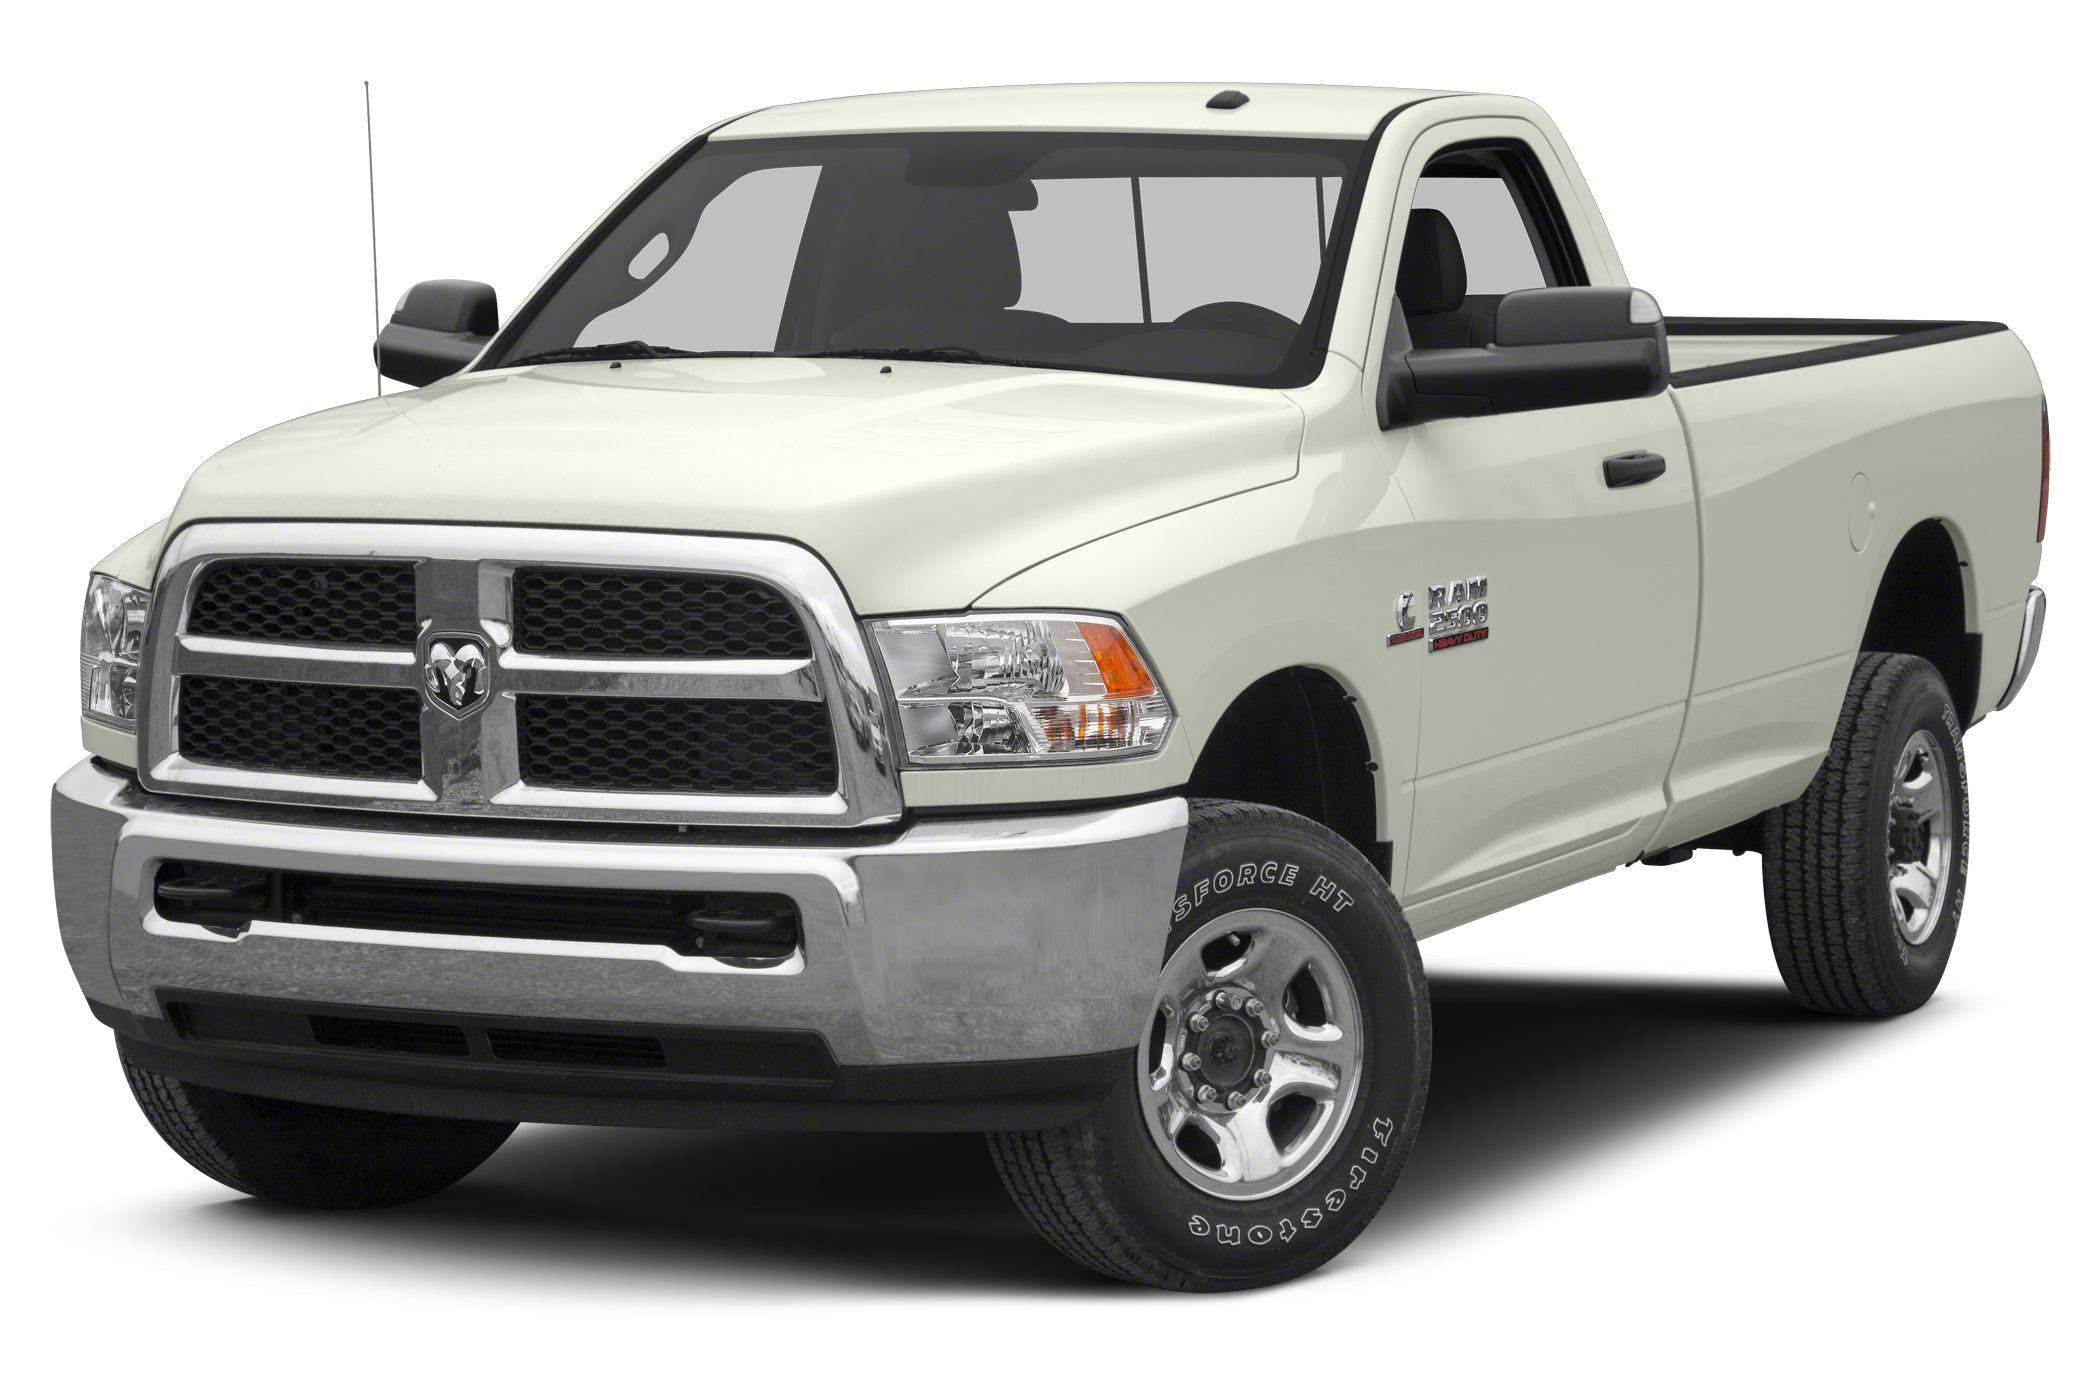 2013 RAM 3500 ST Crew Cab Pickup for sale in Beaverdale for $0 with 23,005 miles